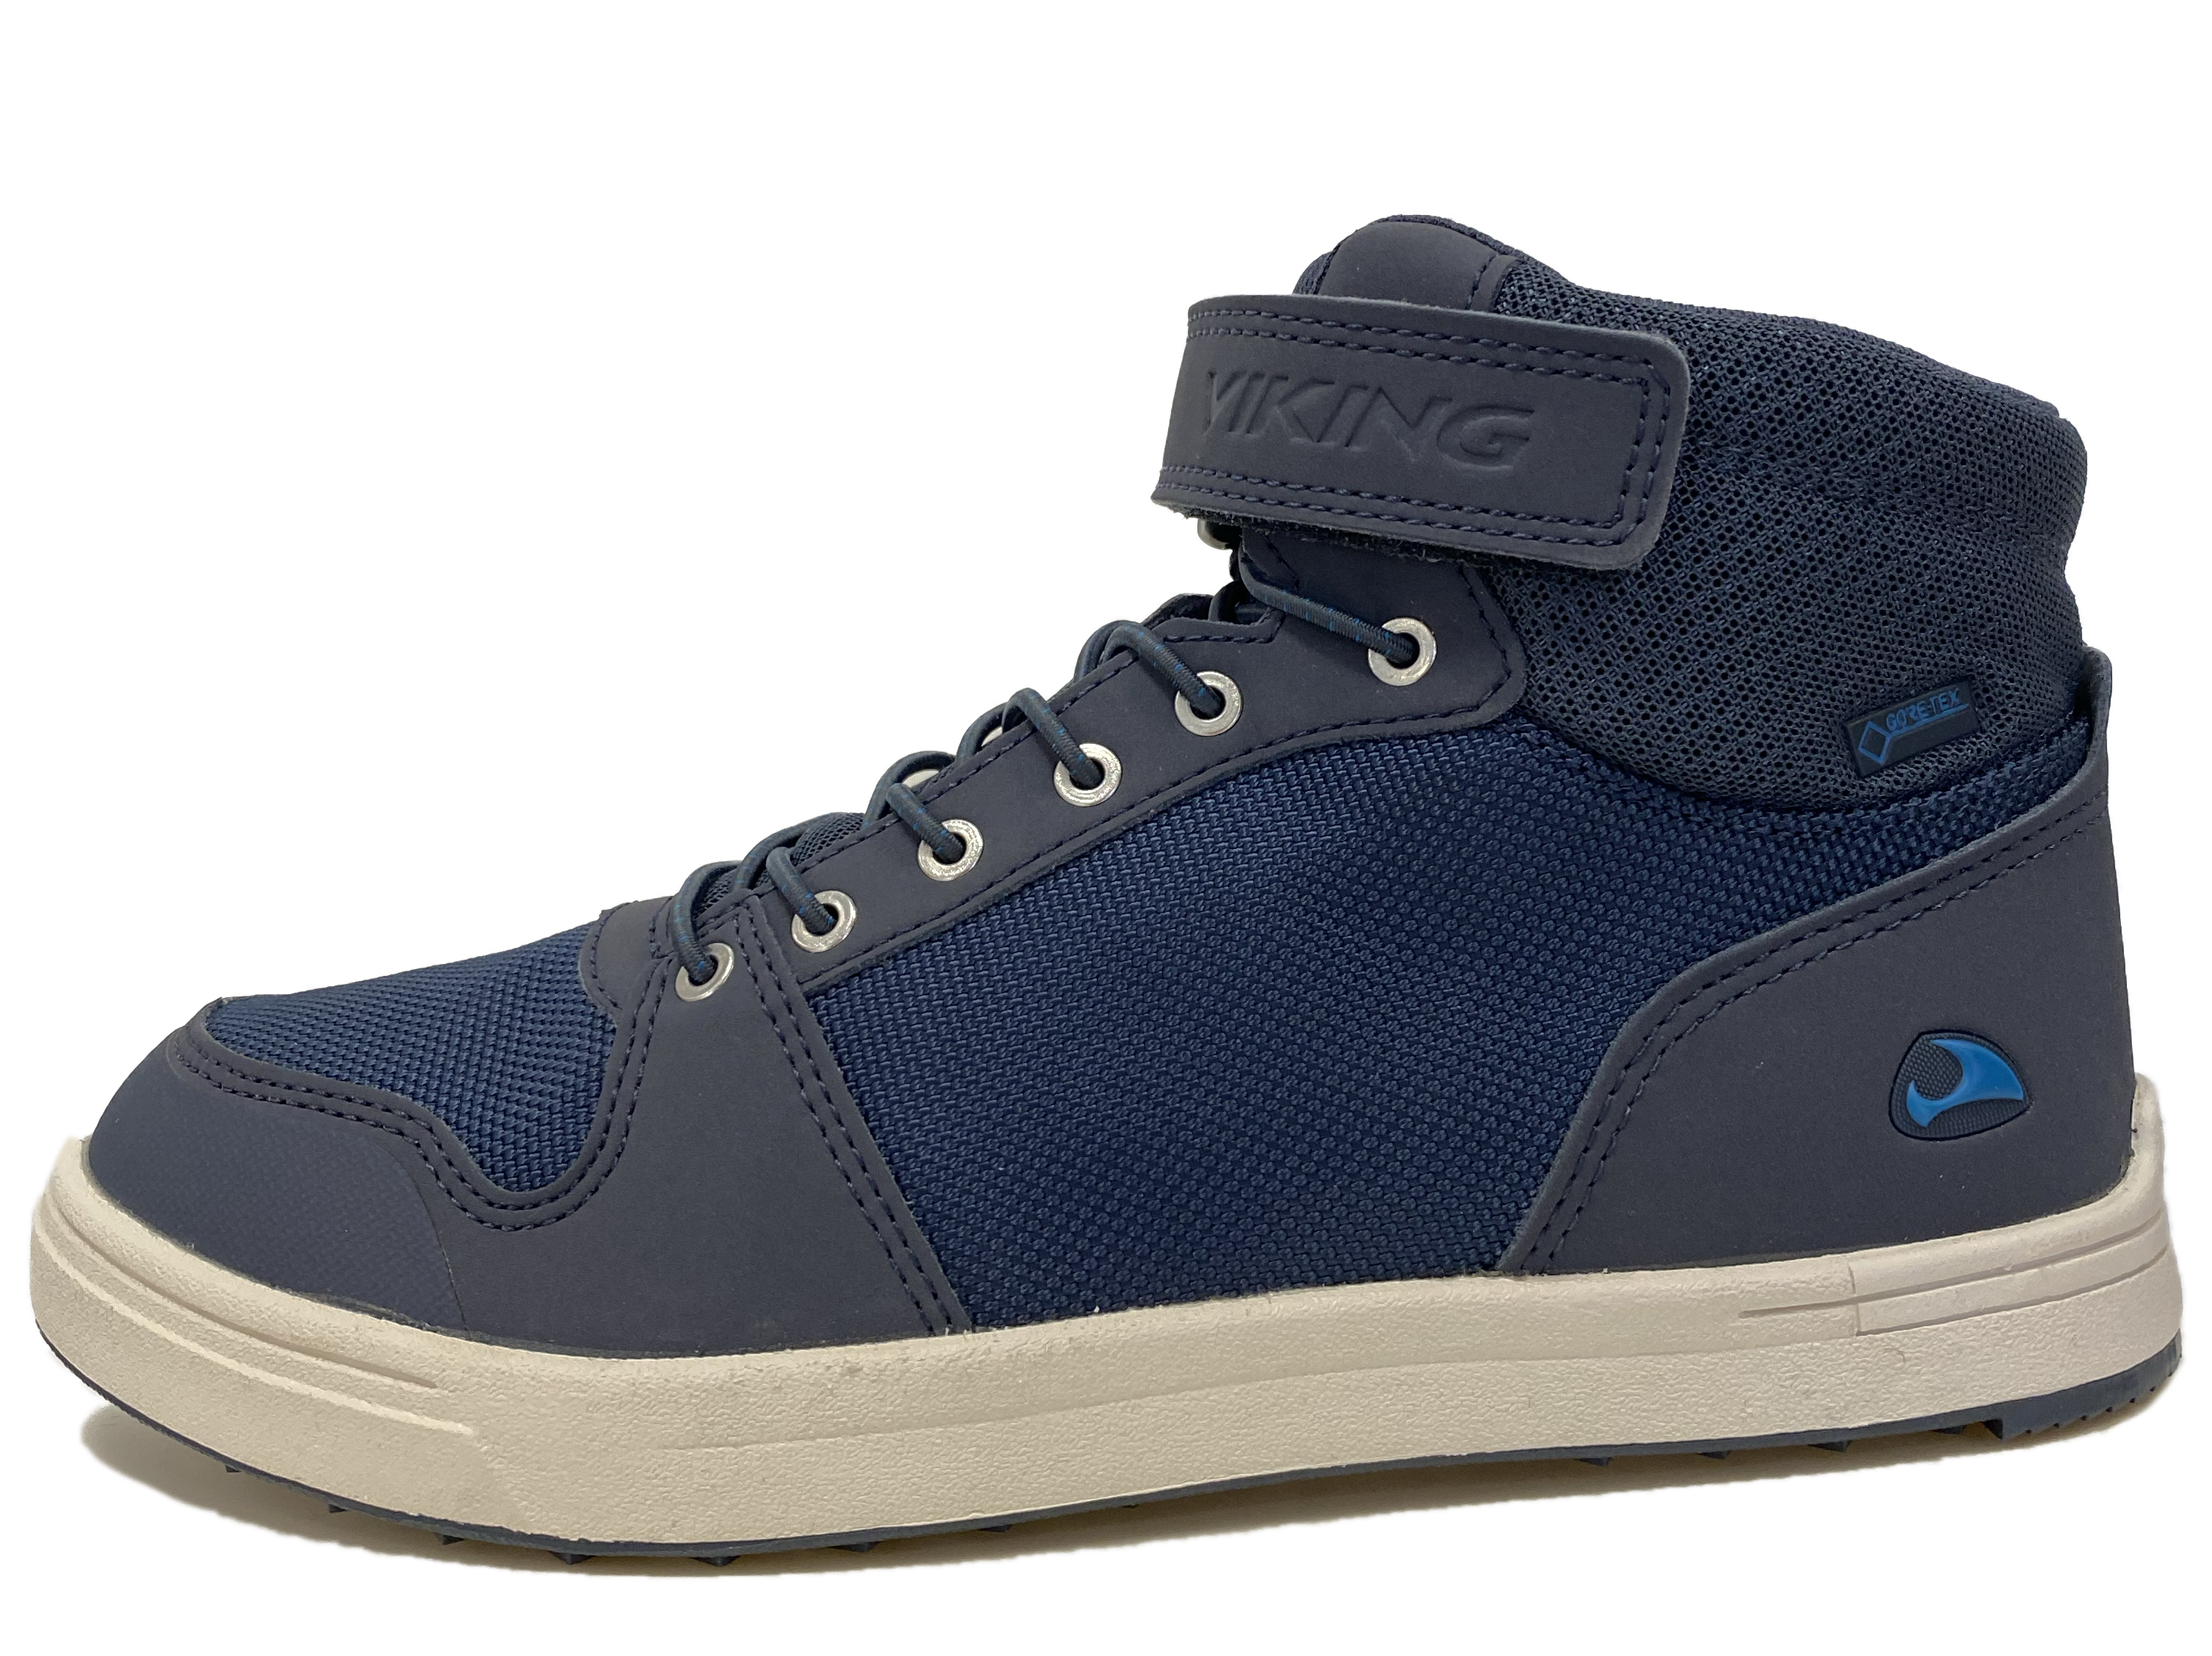 Obuv Viking 3-50150-535 Jakob Mid Navy/Blue Gore-Tex